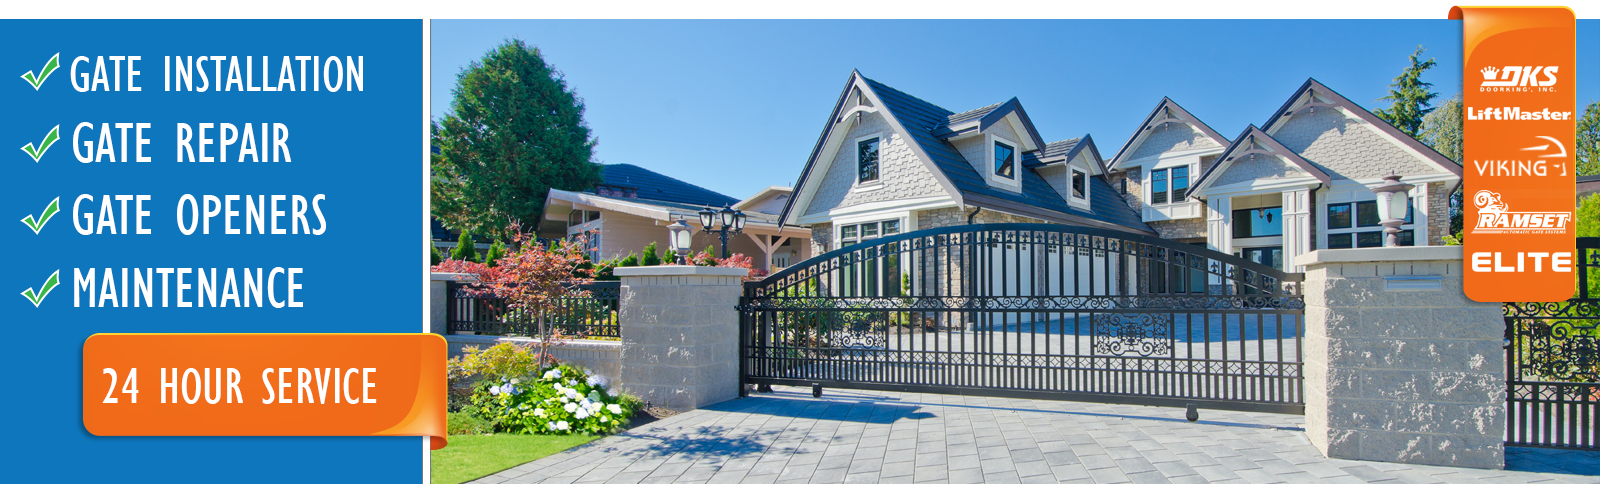 1 Ranked Gate Installation Services In Glendale Ca Call 818 696 5524